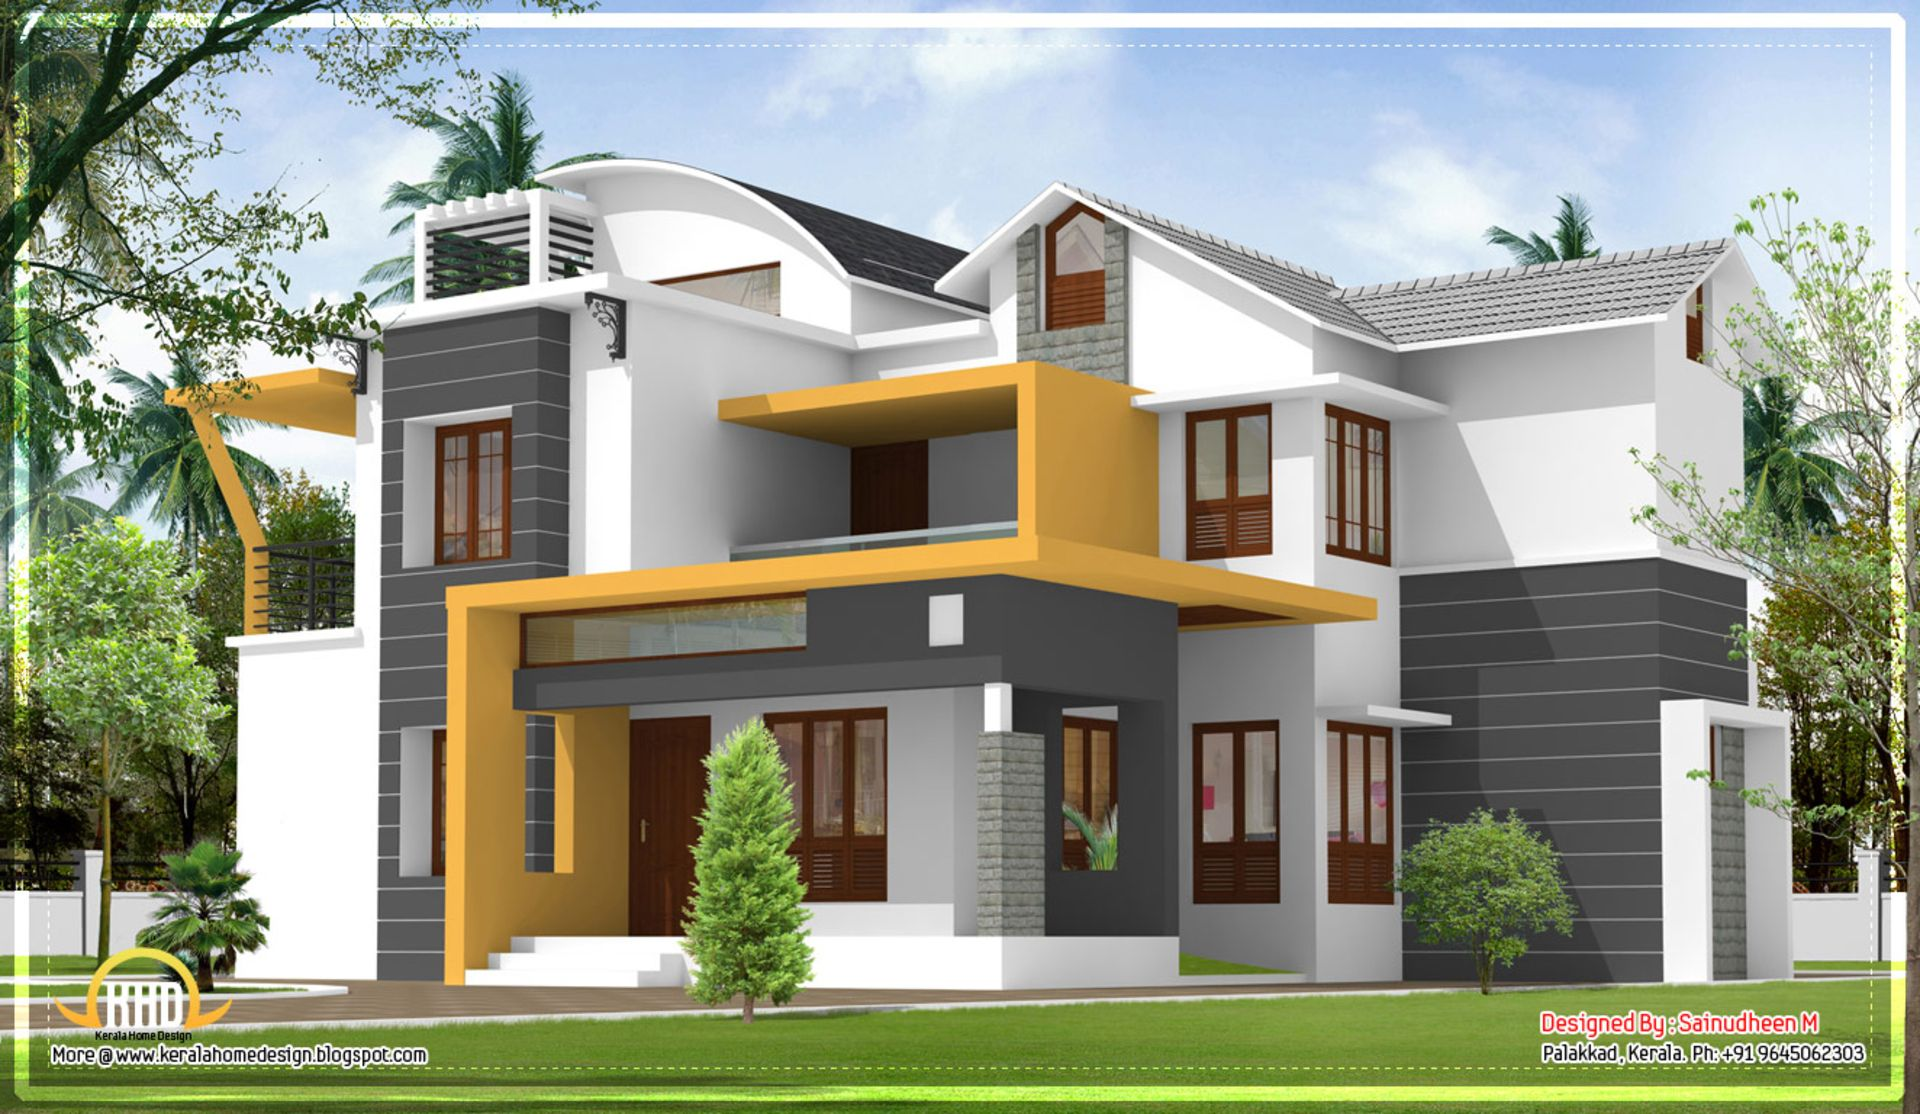 Kerala home design house designs architecture plans architectural stunning square feet bedroom modern house design